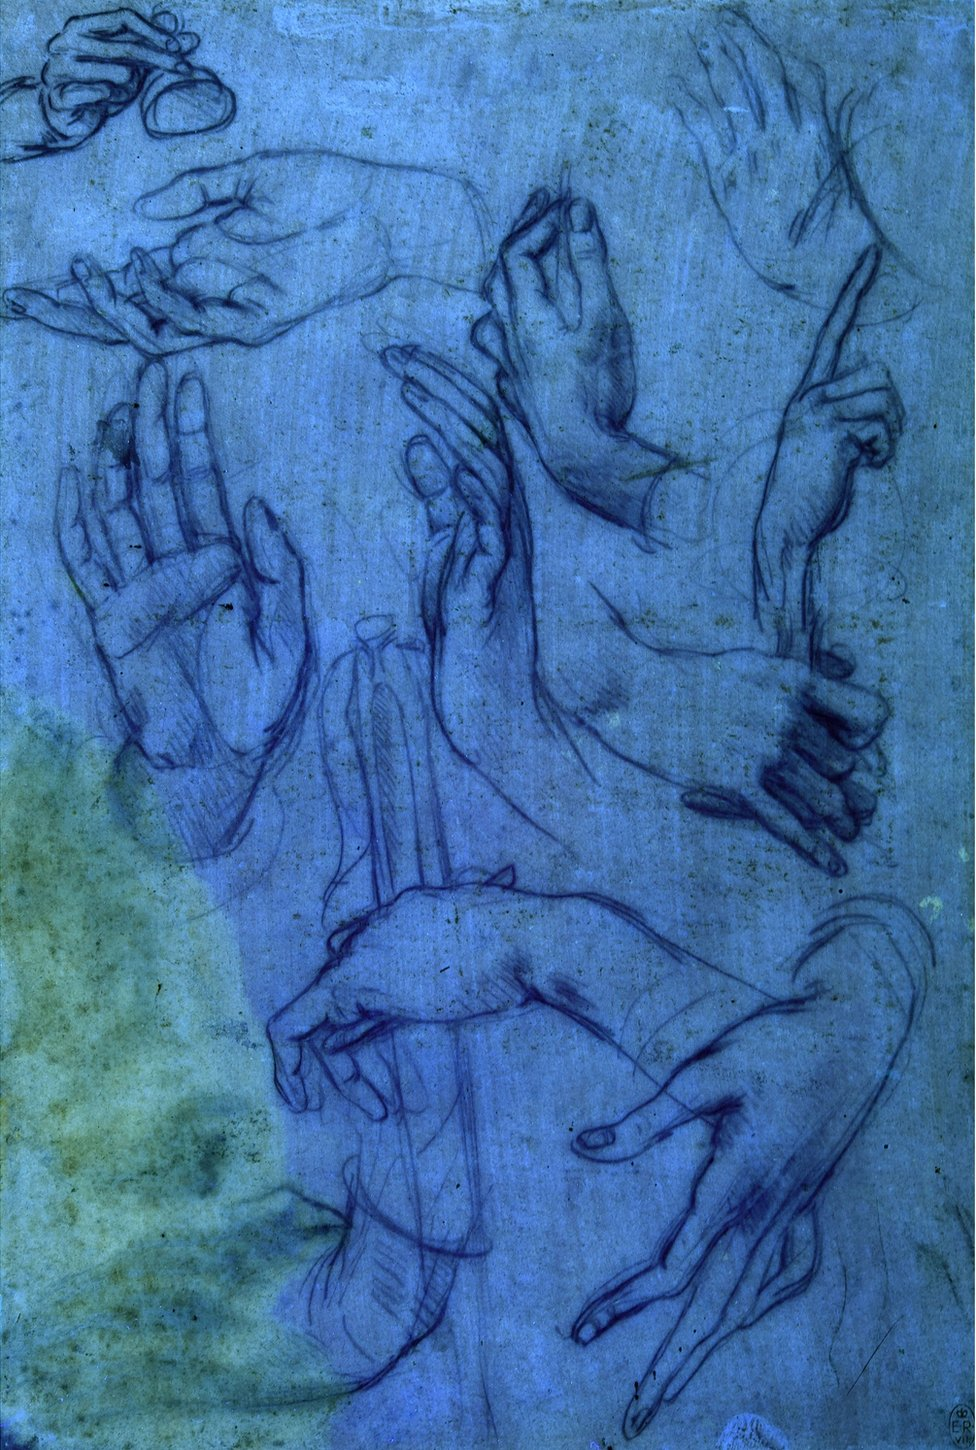 Drawings hands by Leonardo da Vinci